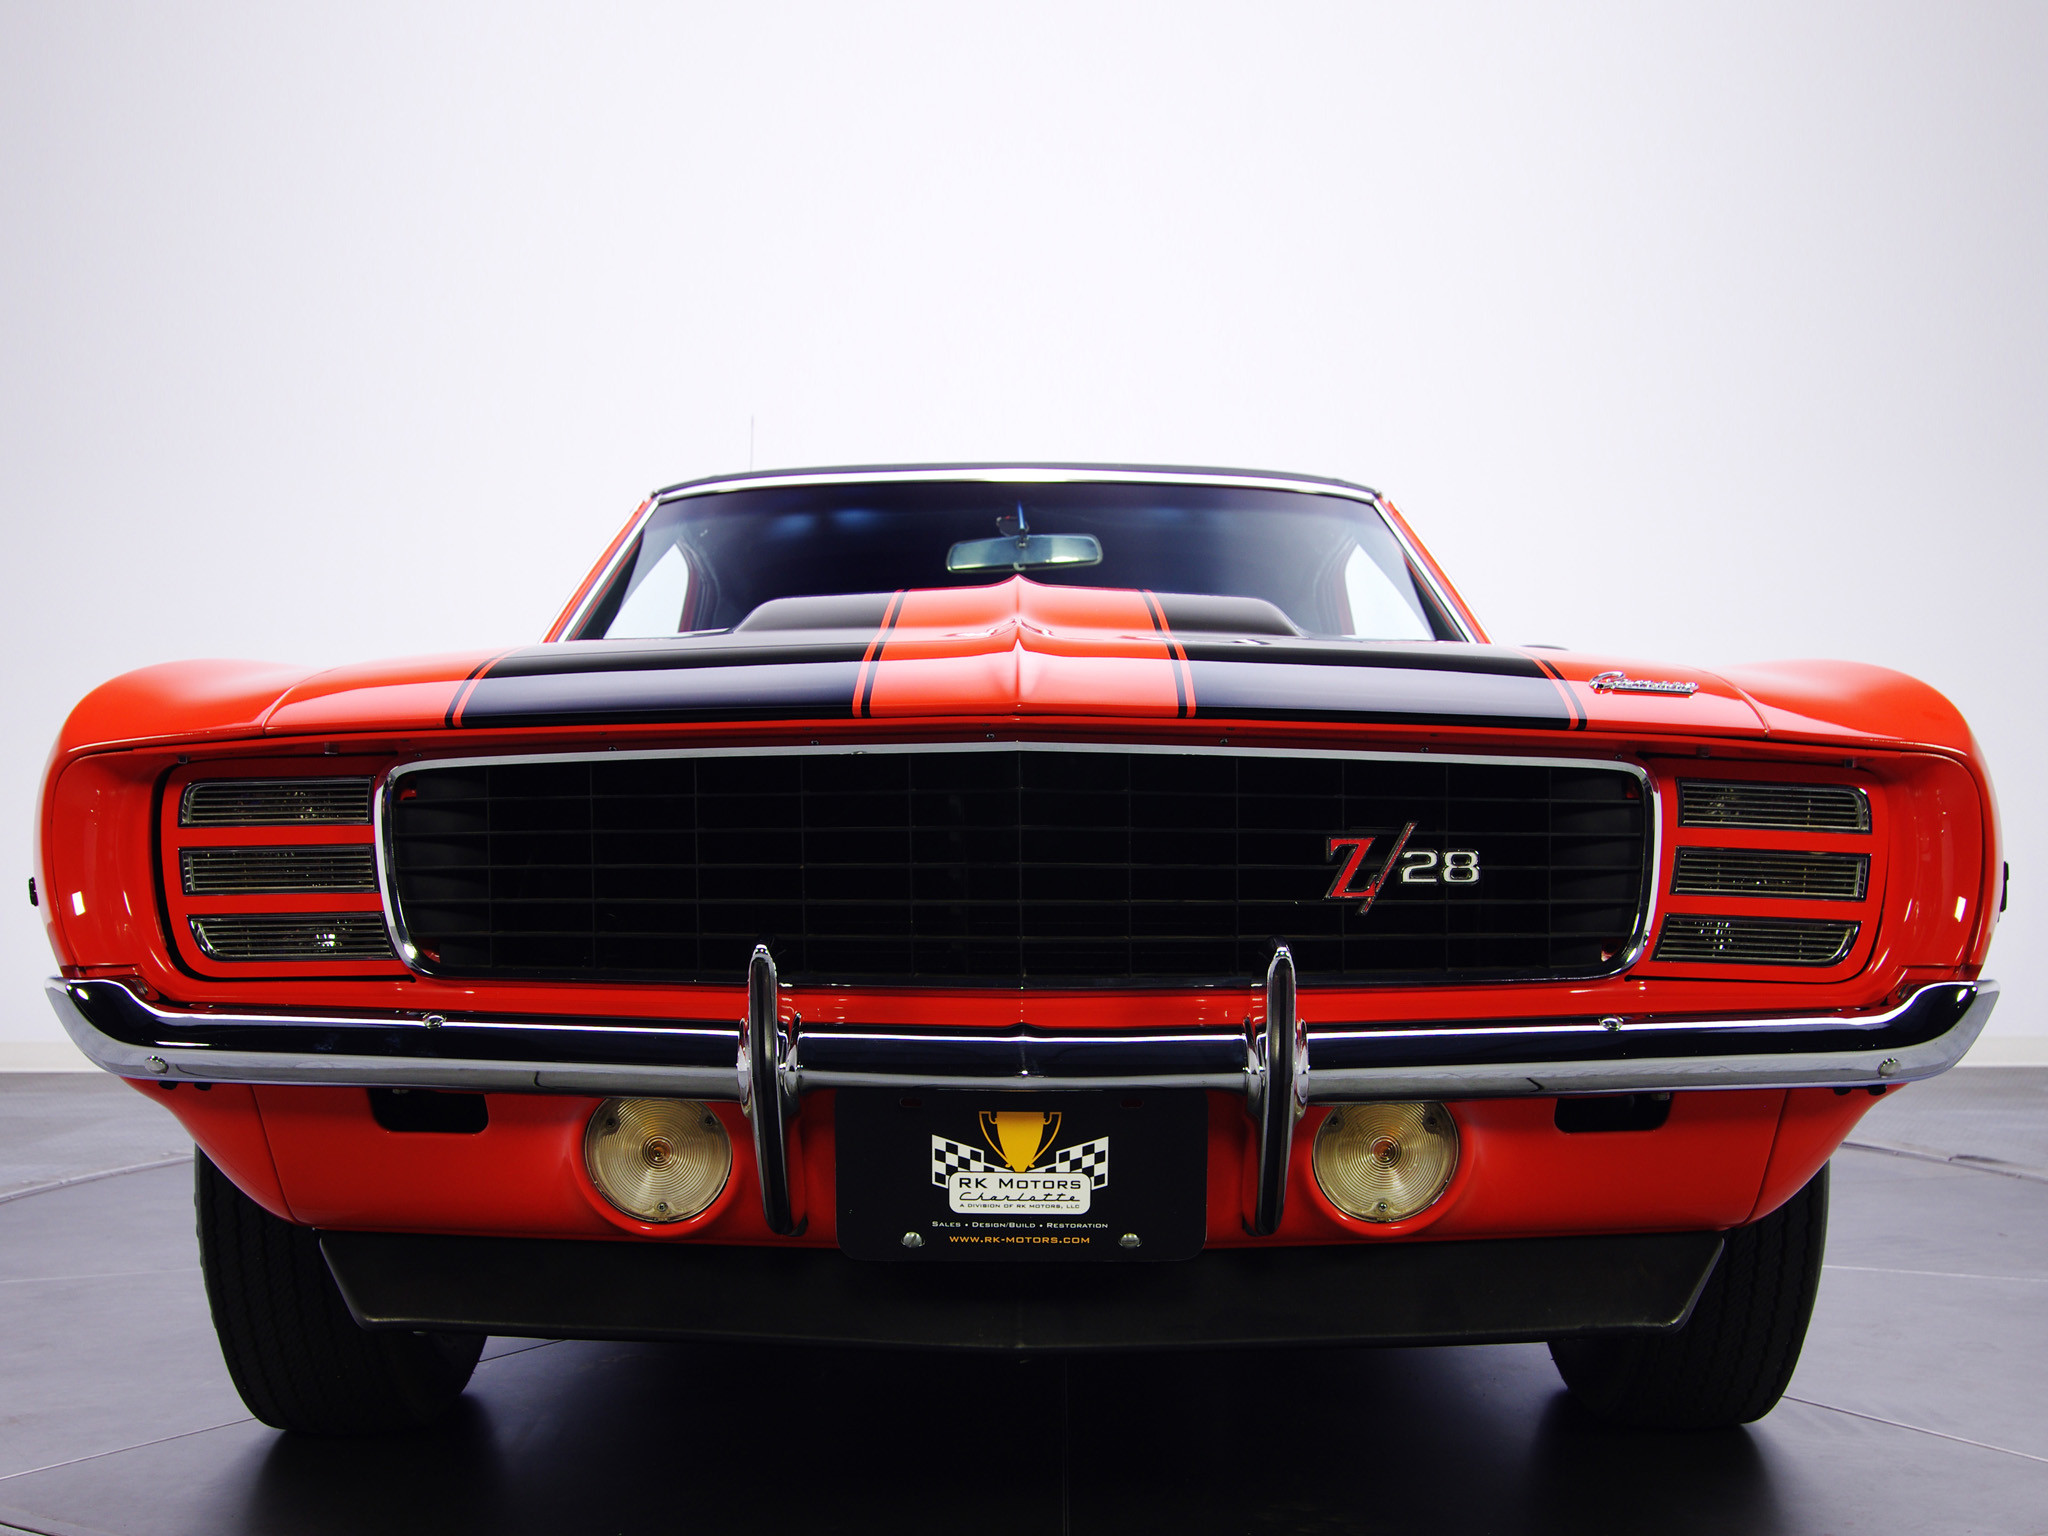 1969 Camaro Wallpaper 183 ①